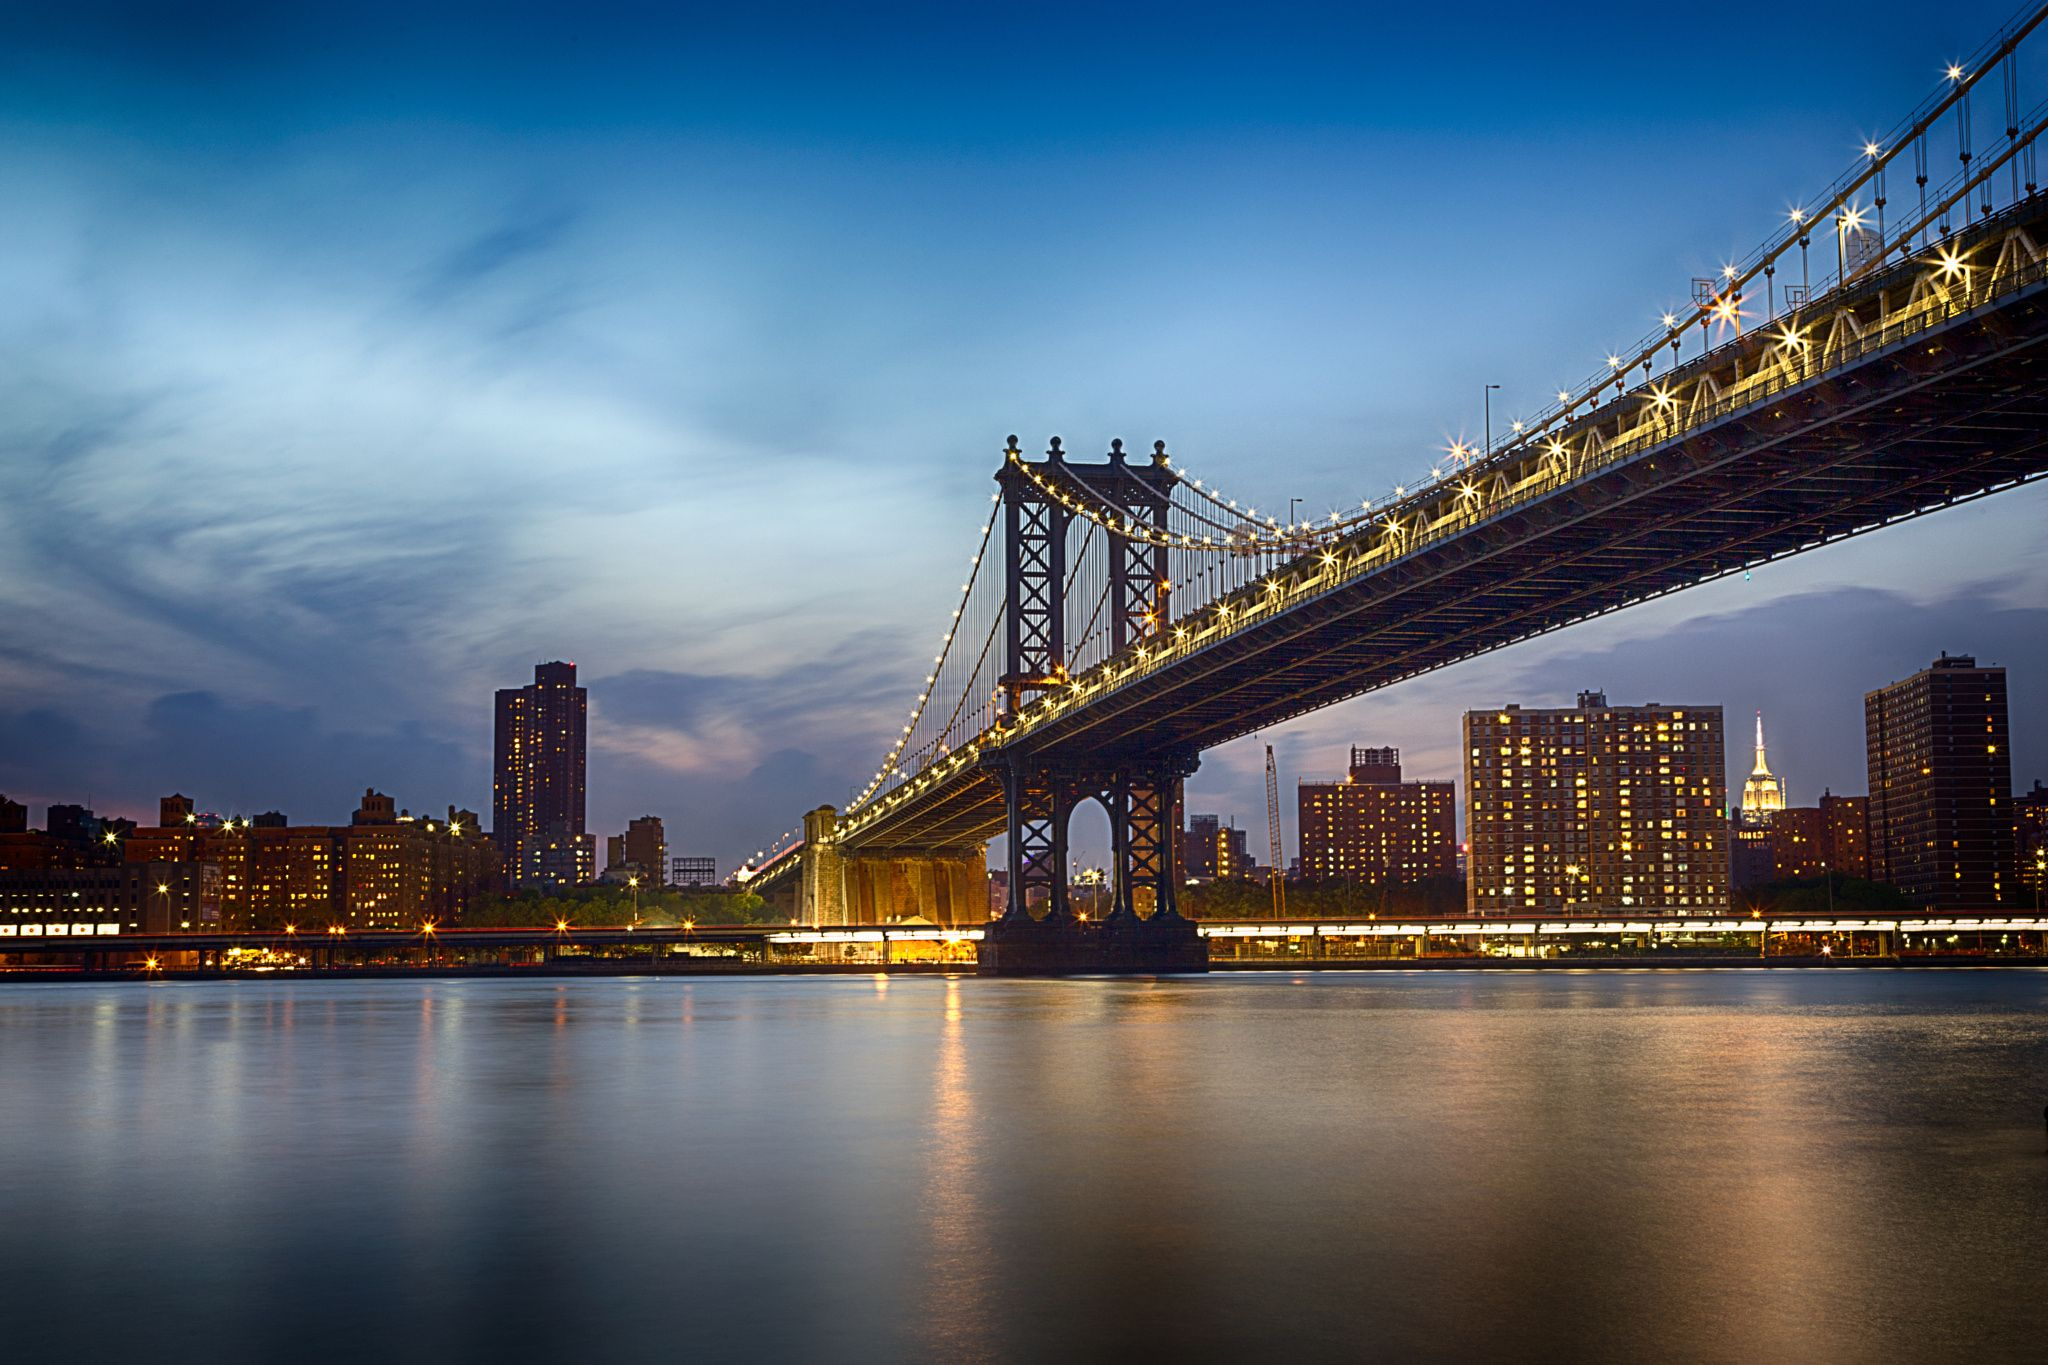 Manhattan Bridge @Blue Hour by Padma Inguva on 500px